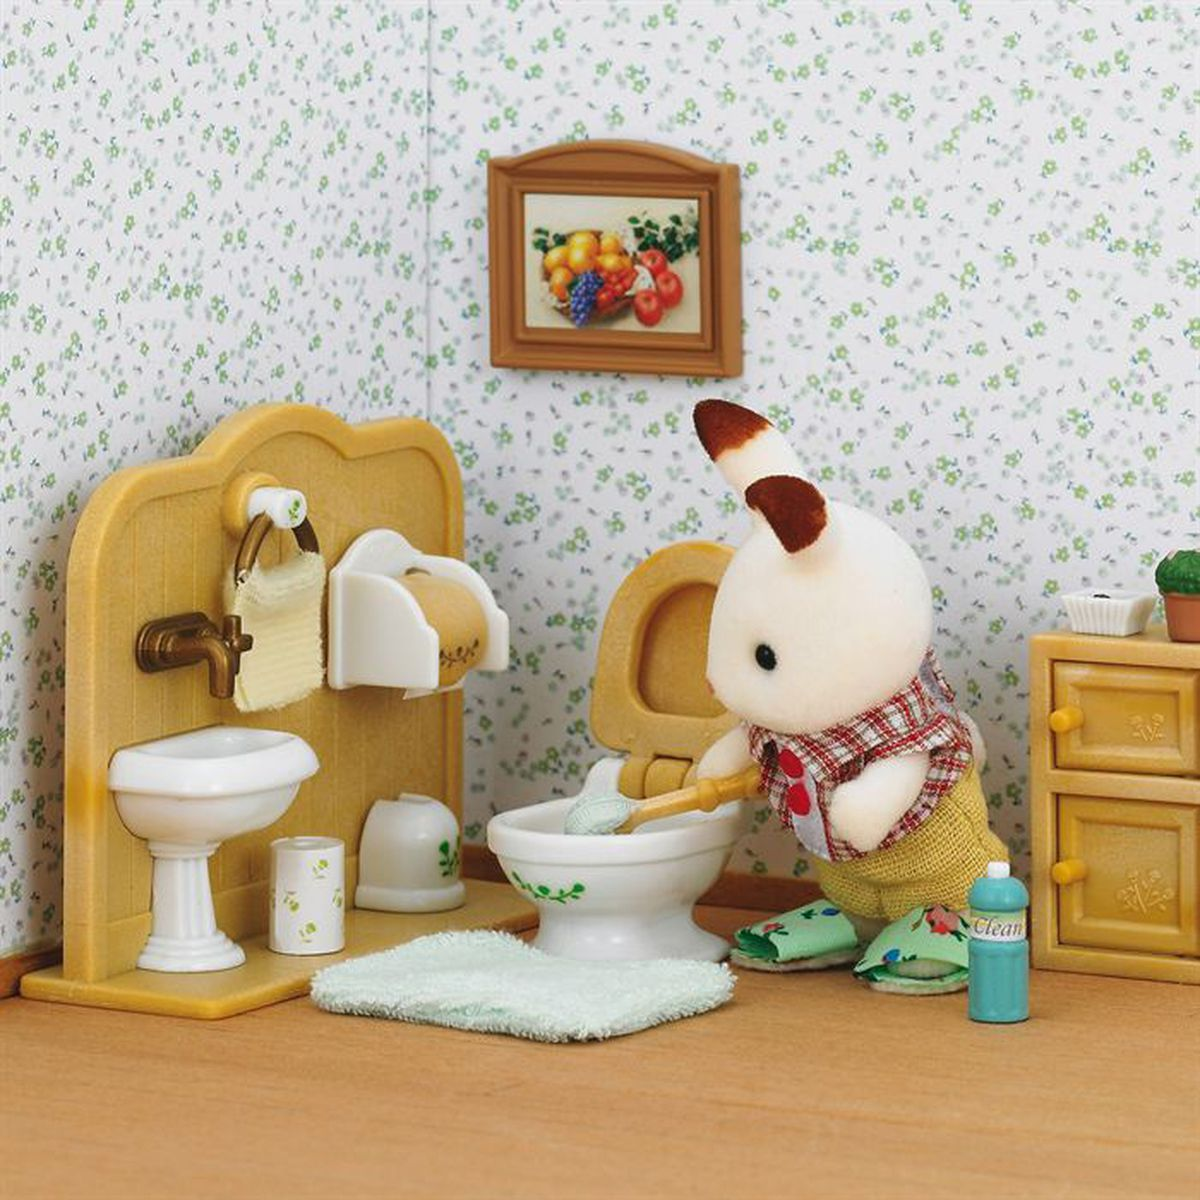 sylvanian families 2203 set lapin choco toilettes achat vente figurine personnage cdiscount. Black Bedroom Furniture Sets. Home Design Ideas